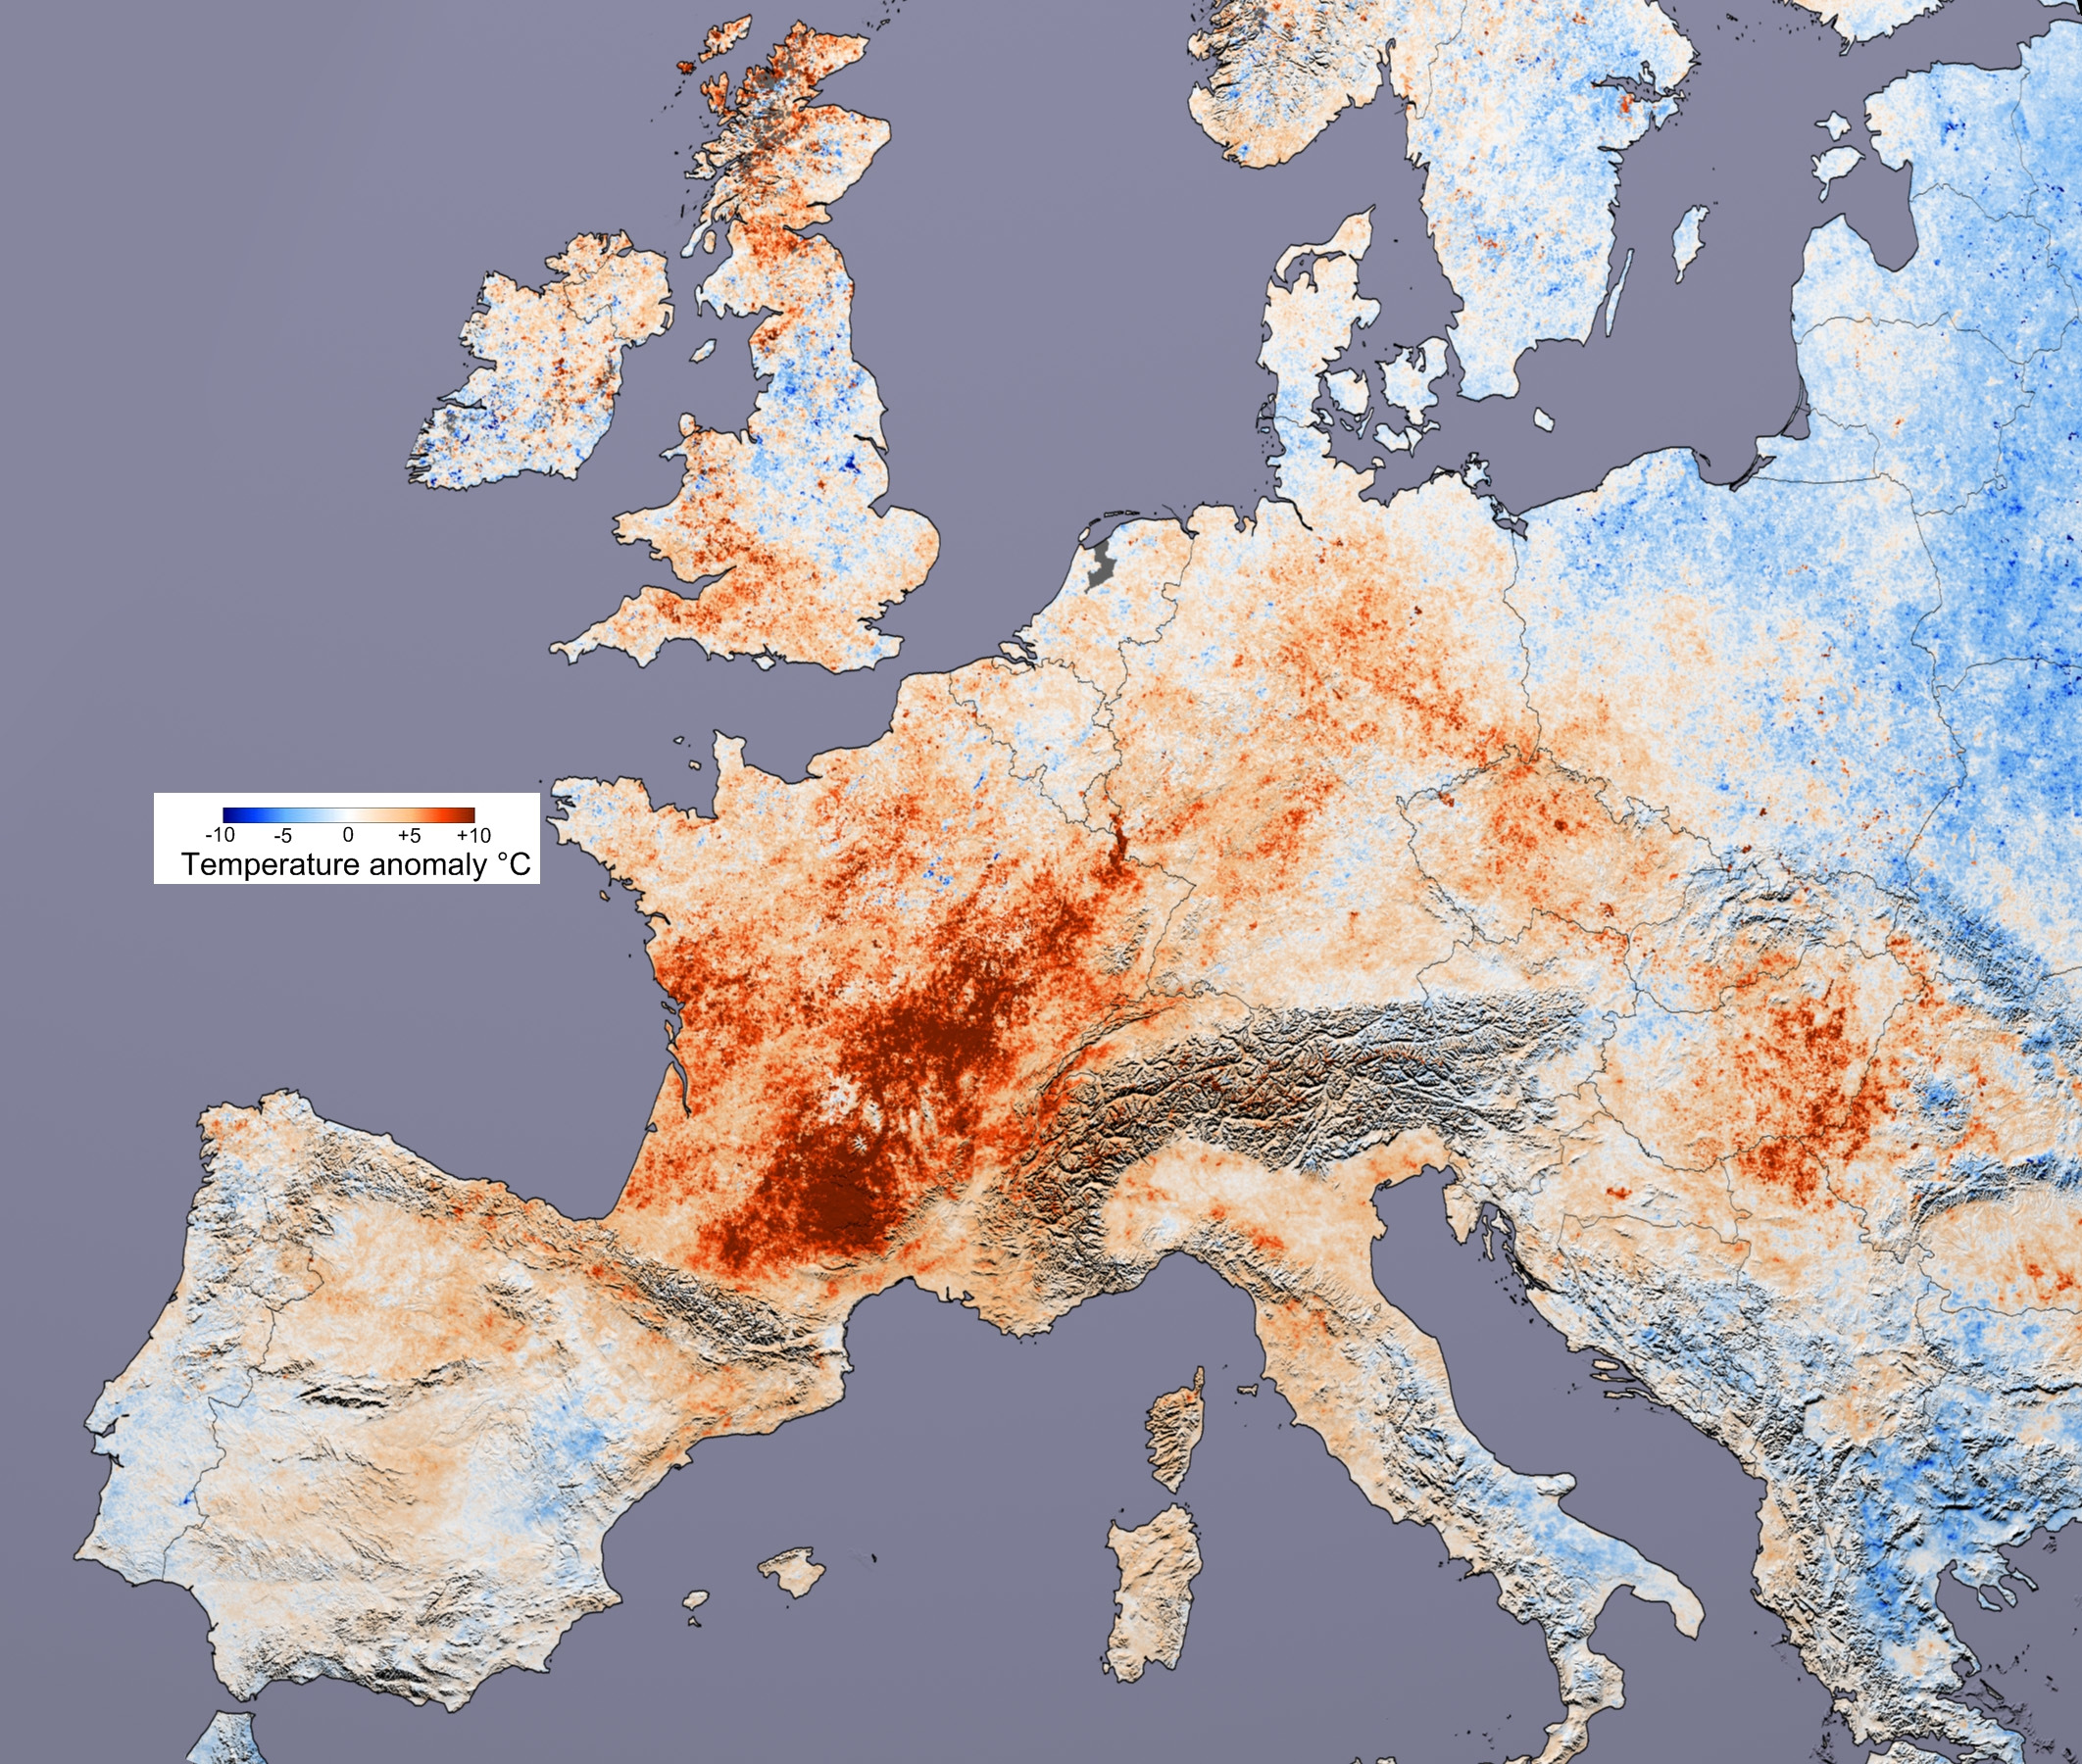 "Difference in average temperature (2000, 2001, 2002 and 2012) from 2003, covering the date range of 20 July – 20 August  ""2003 European heat wave"" Wikipedia [https://en.wikipedia.org/wiki/2003_European_heat_wave] accessed on 29, Oct. 2020."